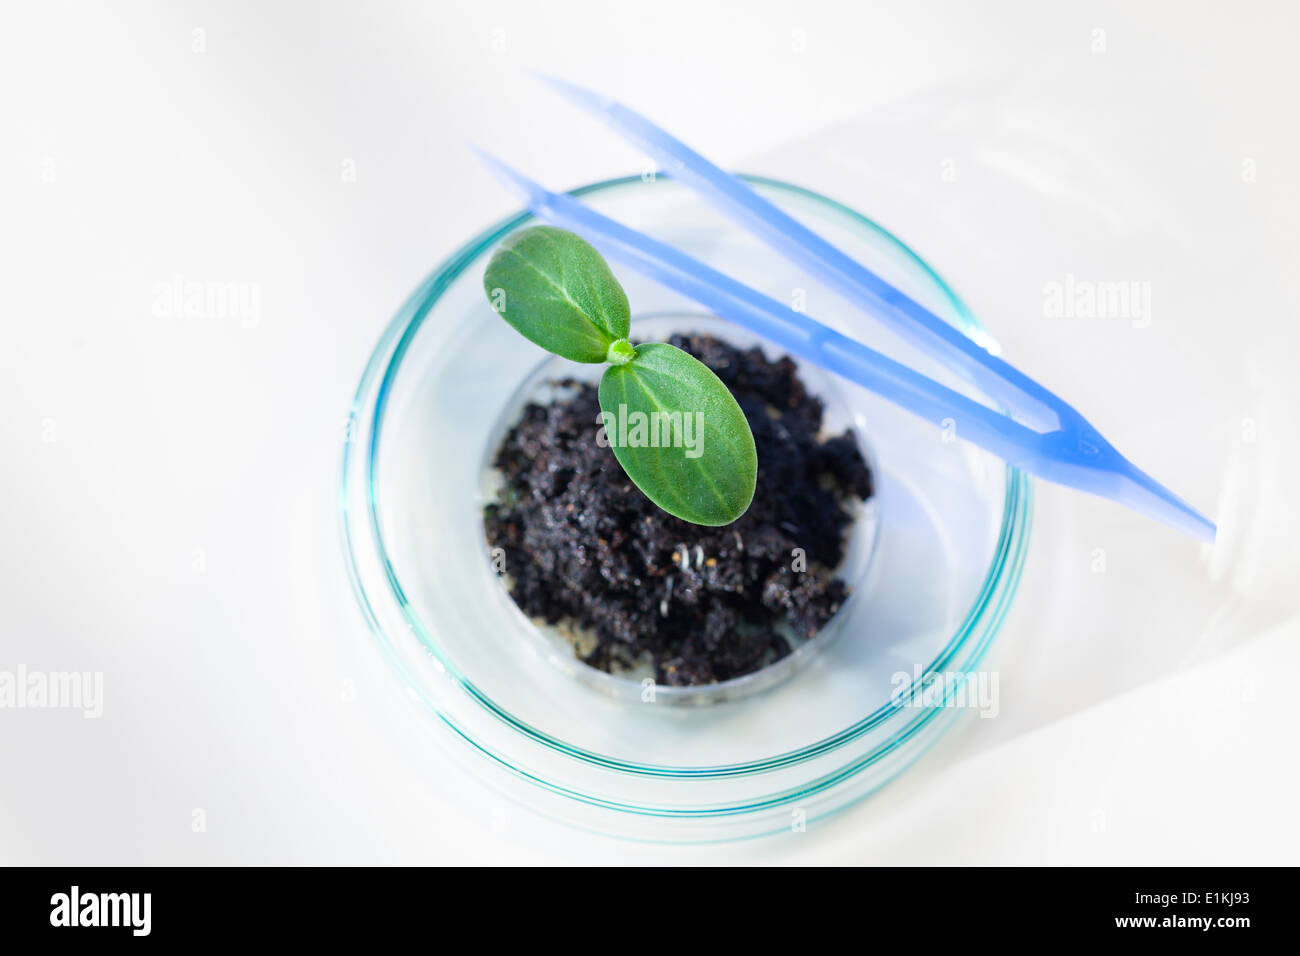 Seedling in a petri dish close up. - Stock Image